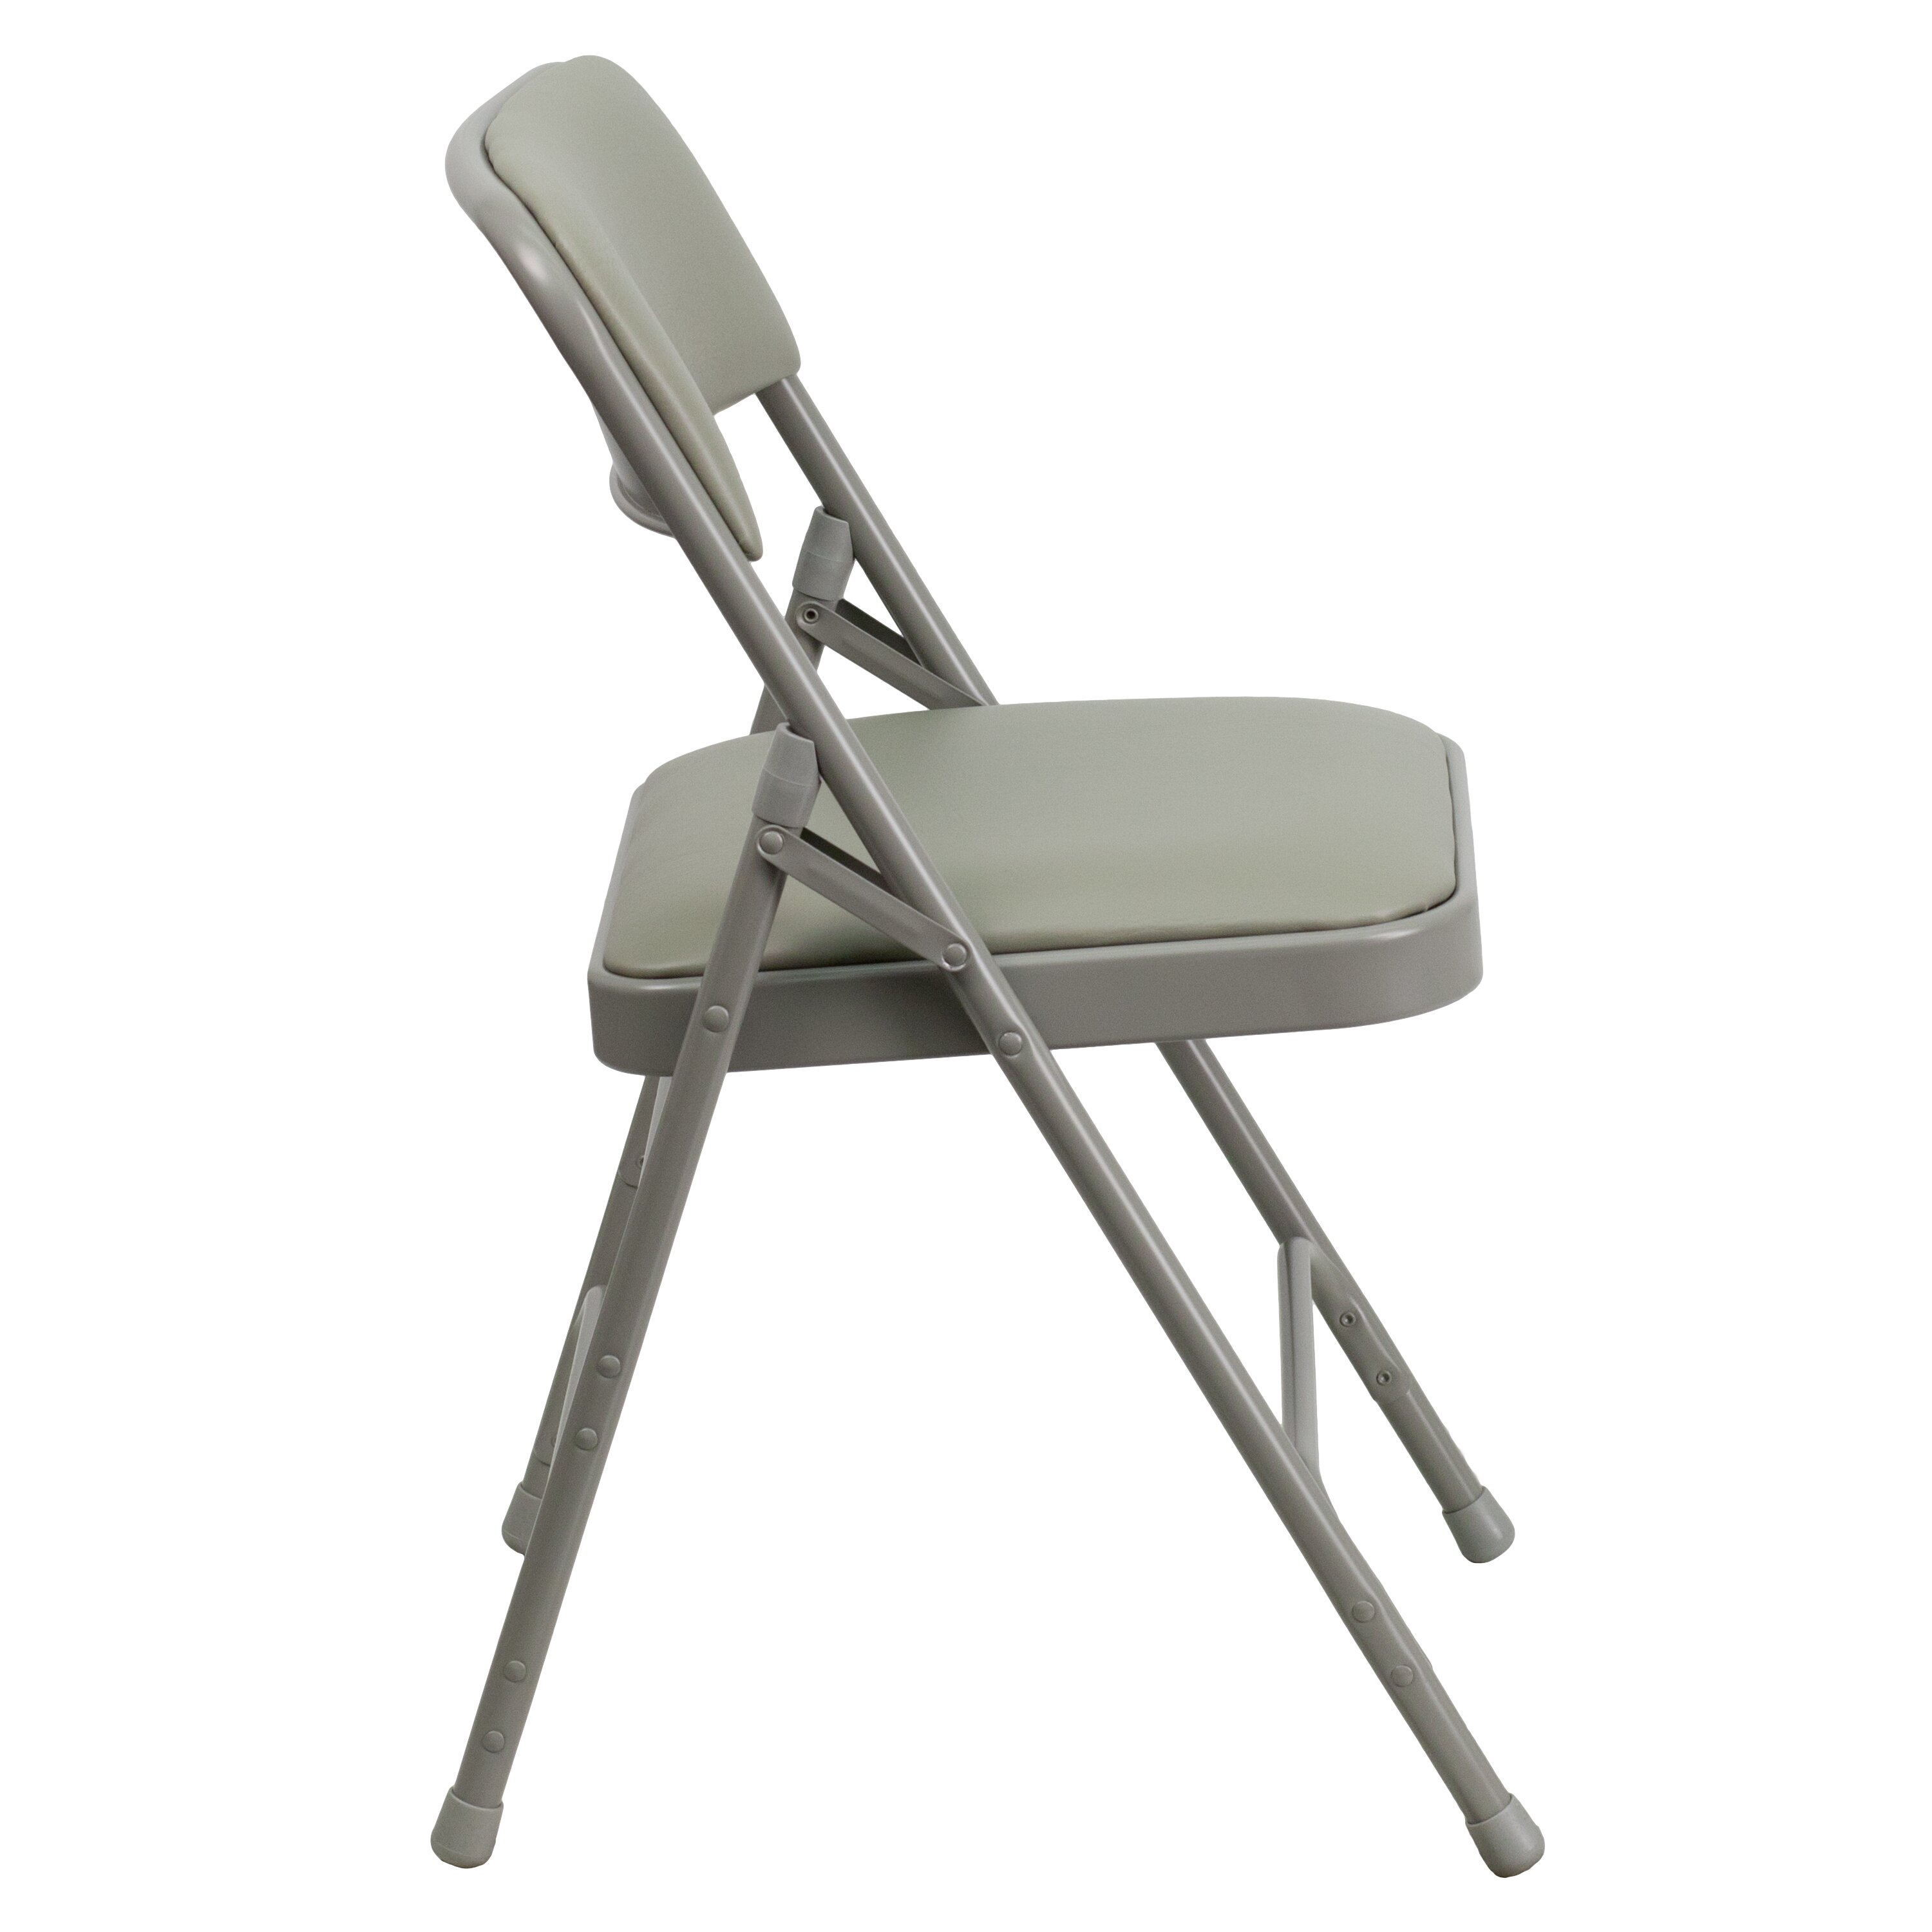 metal padded folding chairs. Customized Padded Folding Chairs Metal 1